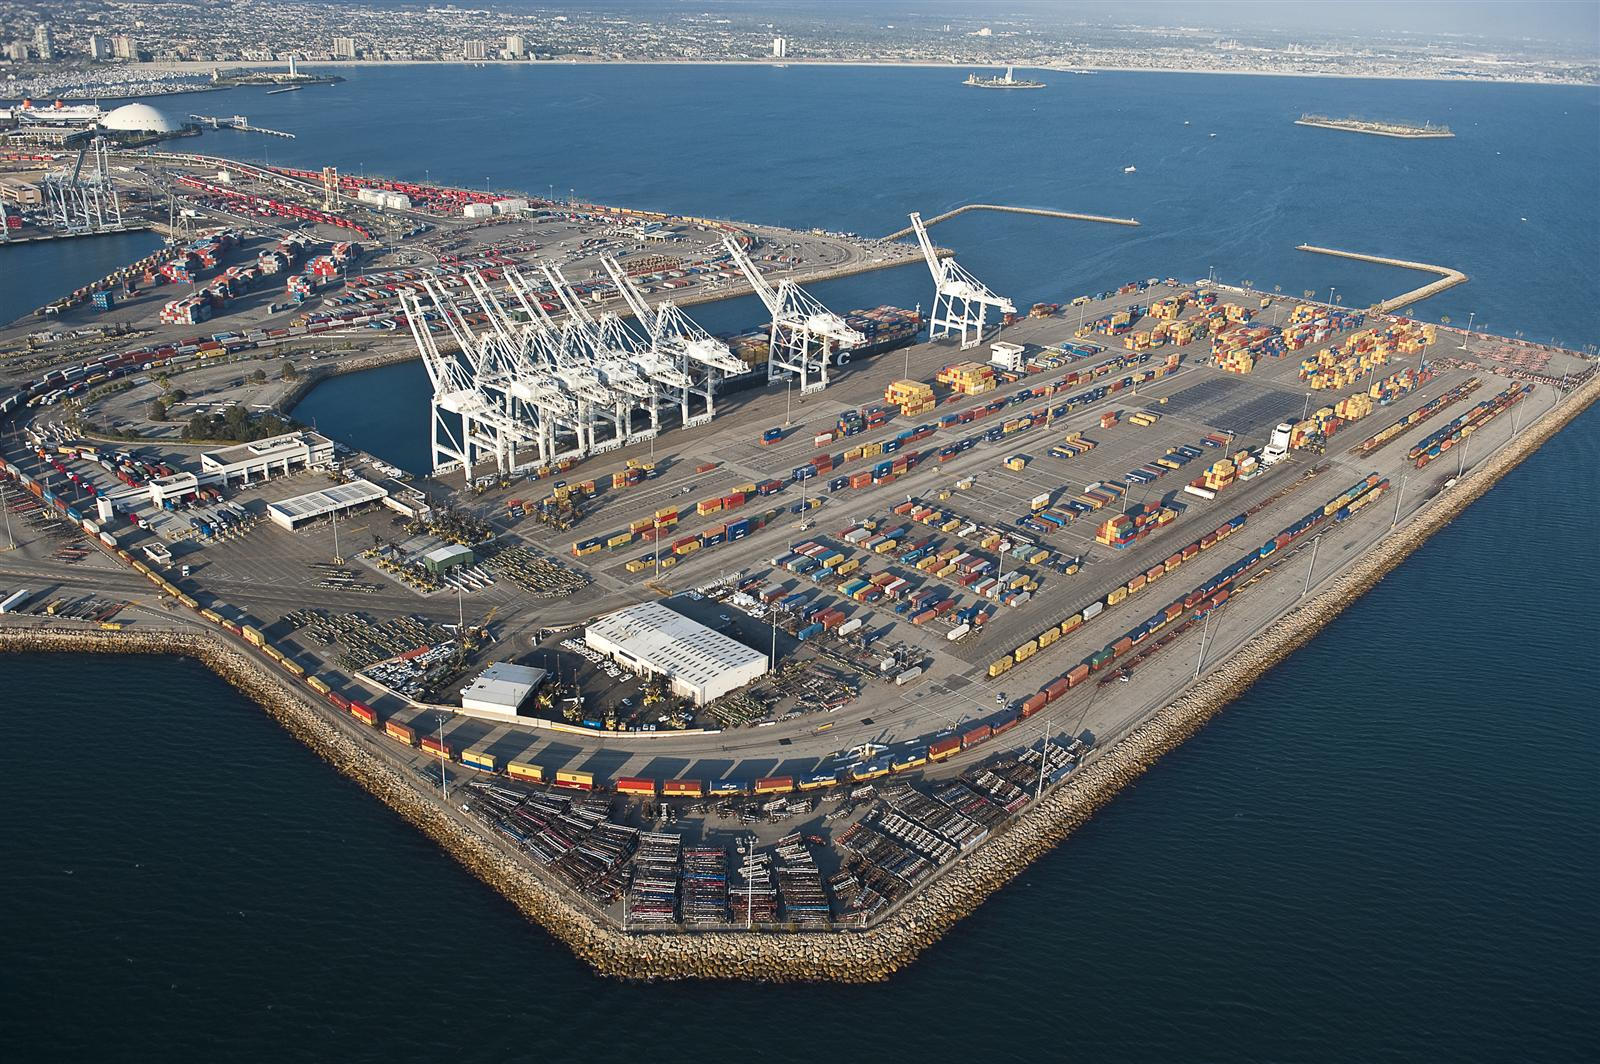 Port Tracker Report is Bullish on Import Growth in the Coming Months